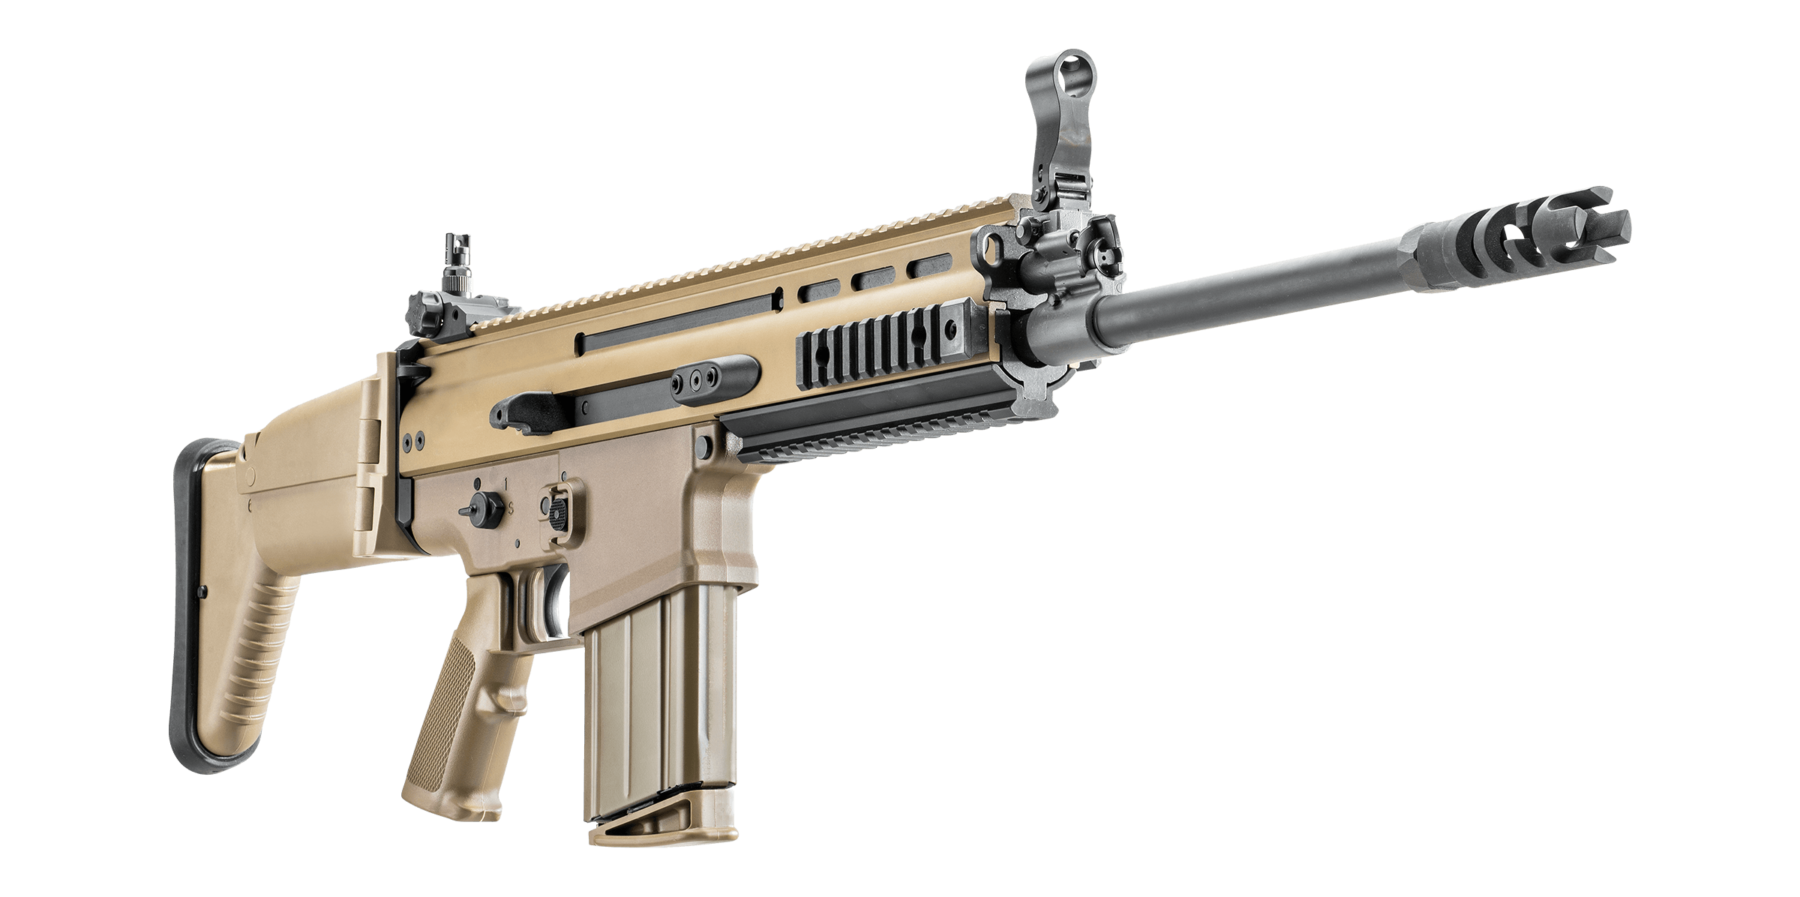 Transparent guns scar. Fn s